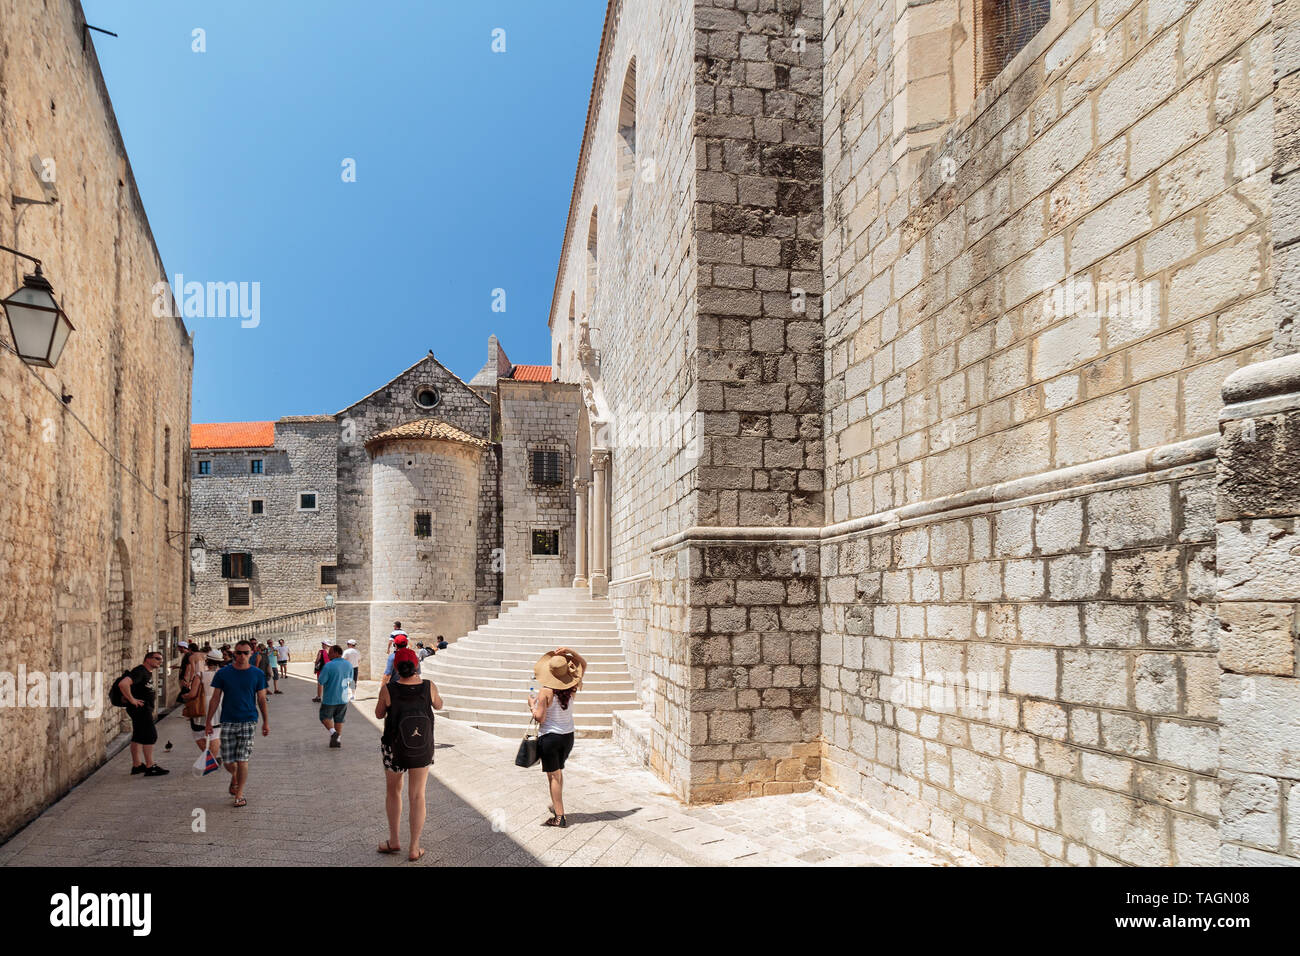 DUBROVNIK, CROATIA - JULY 13, 2016: Summer scene of the path leading to Ploce Gate and St. Sebastian church entrance steps in city of Dubrovnik, Croat - Stock Image